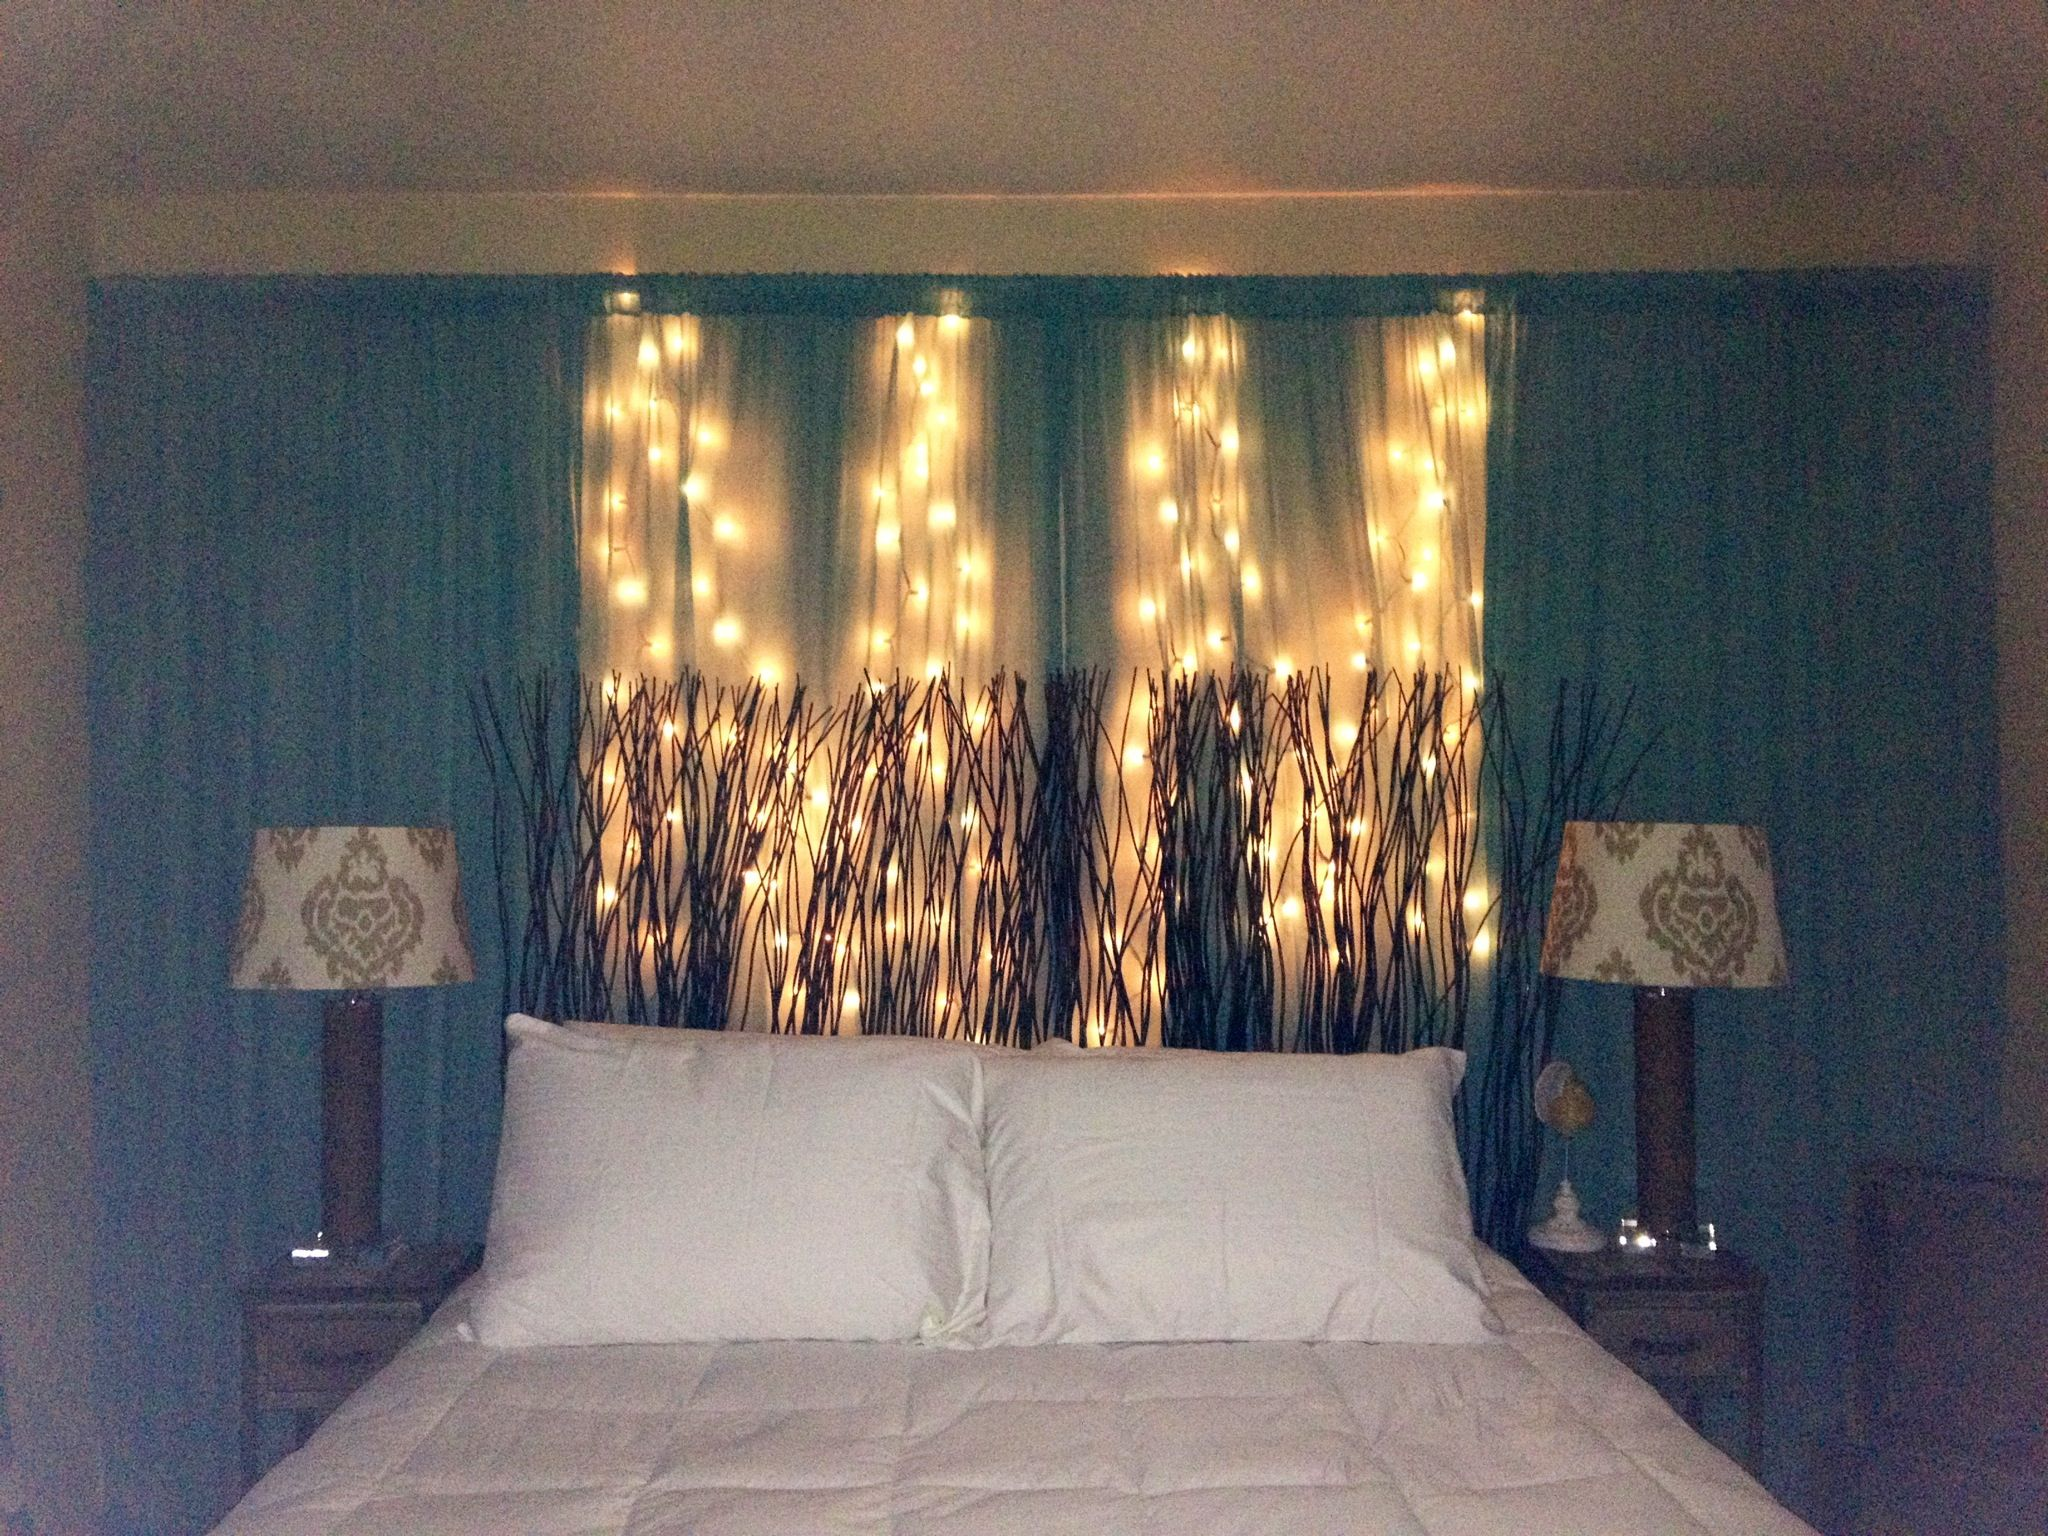 Curtains On Wall Behind Bed Diy Curtain And String Lights Behind Headboard On Wall